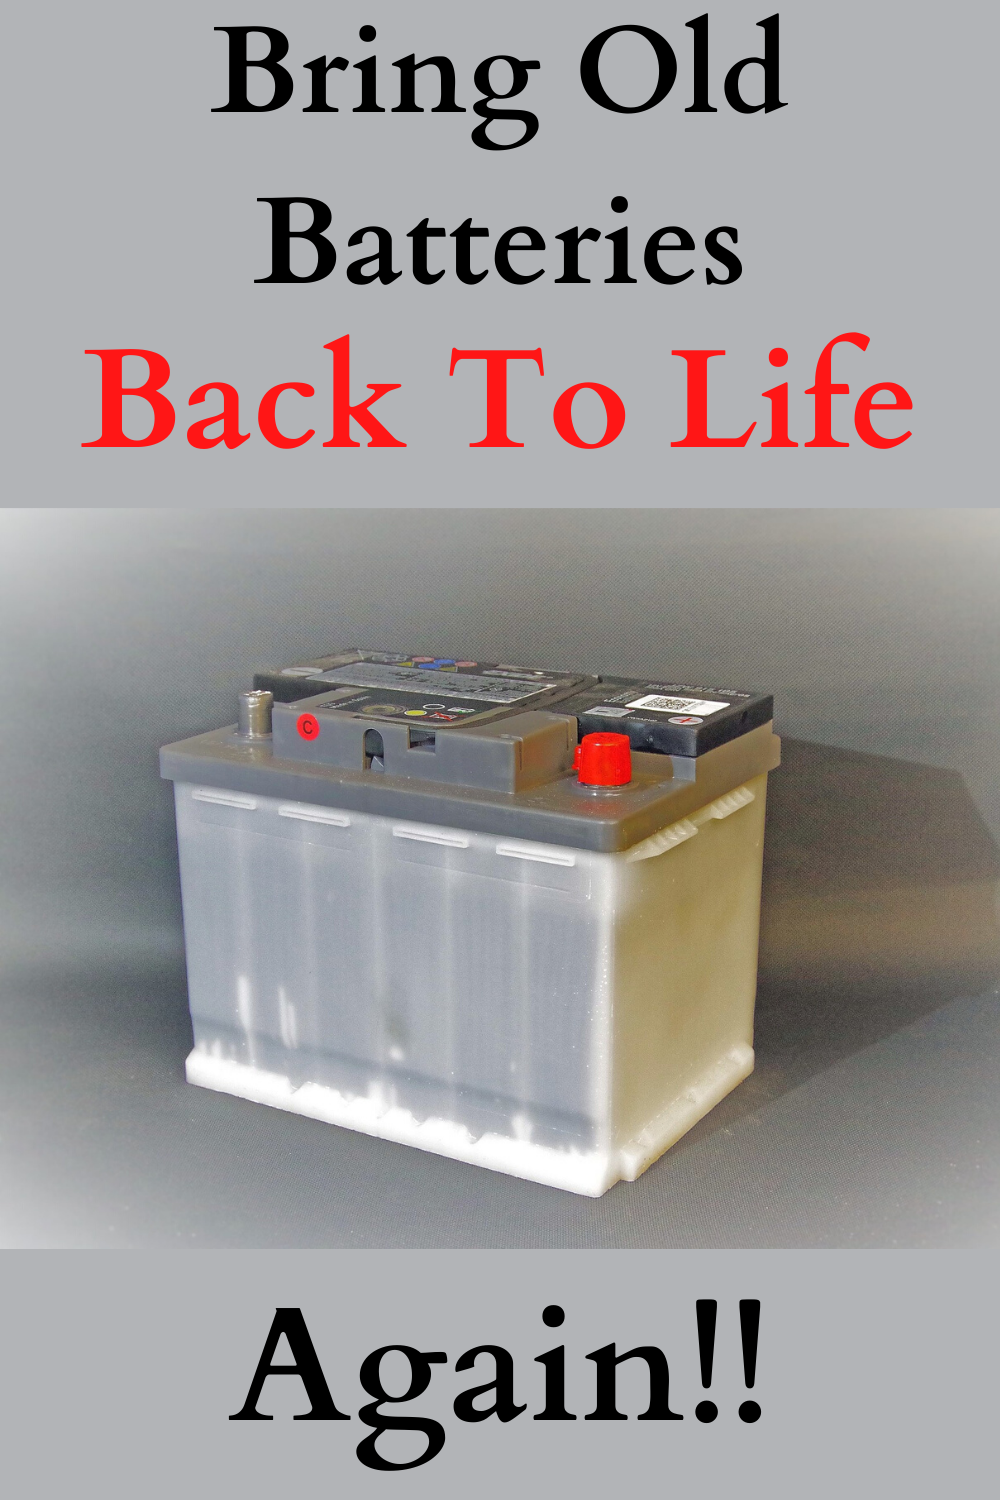 Bringing Dead Batteries Back To Life Is Simple Batteries Diy Dead Car Battery Batteries